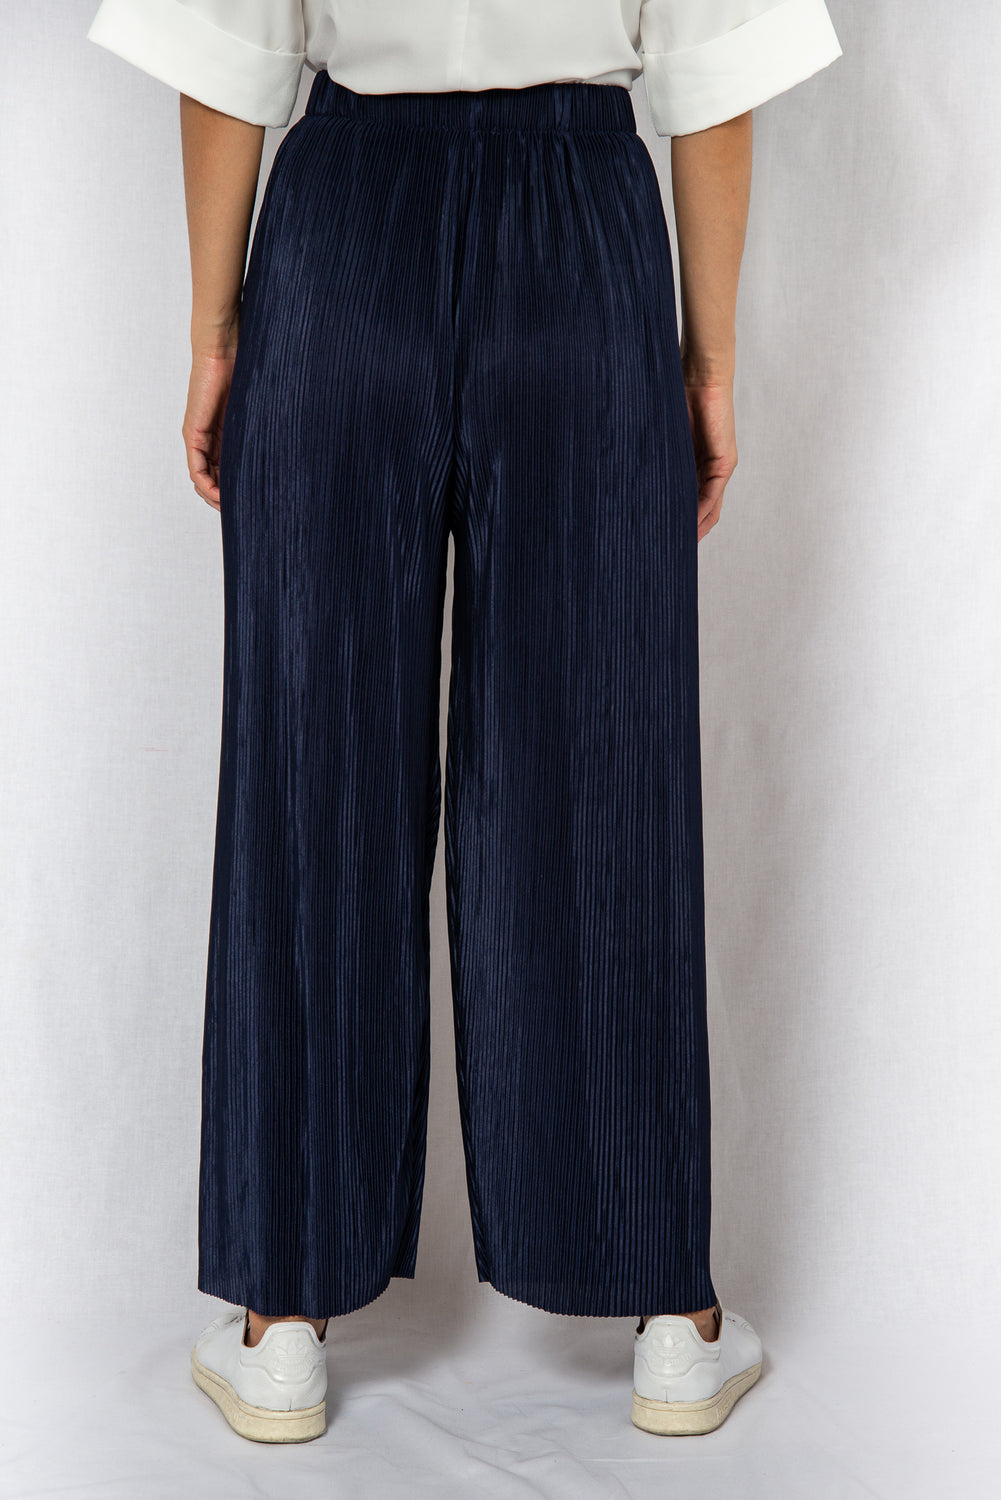 MODZ Navy Loose Pleated Pants Modest Wide Trousers With Pleats Elastic Waistband in Lightweight Polyester